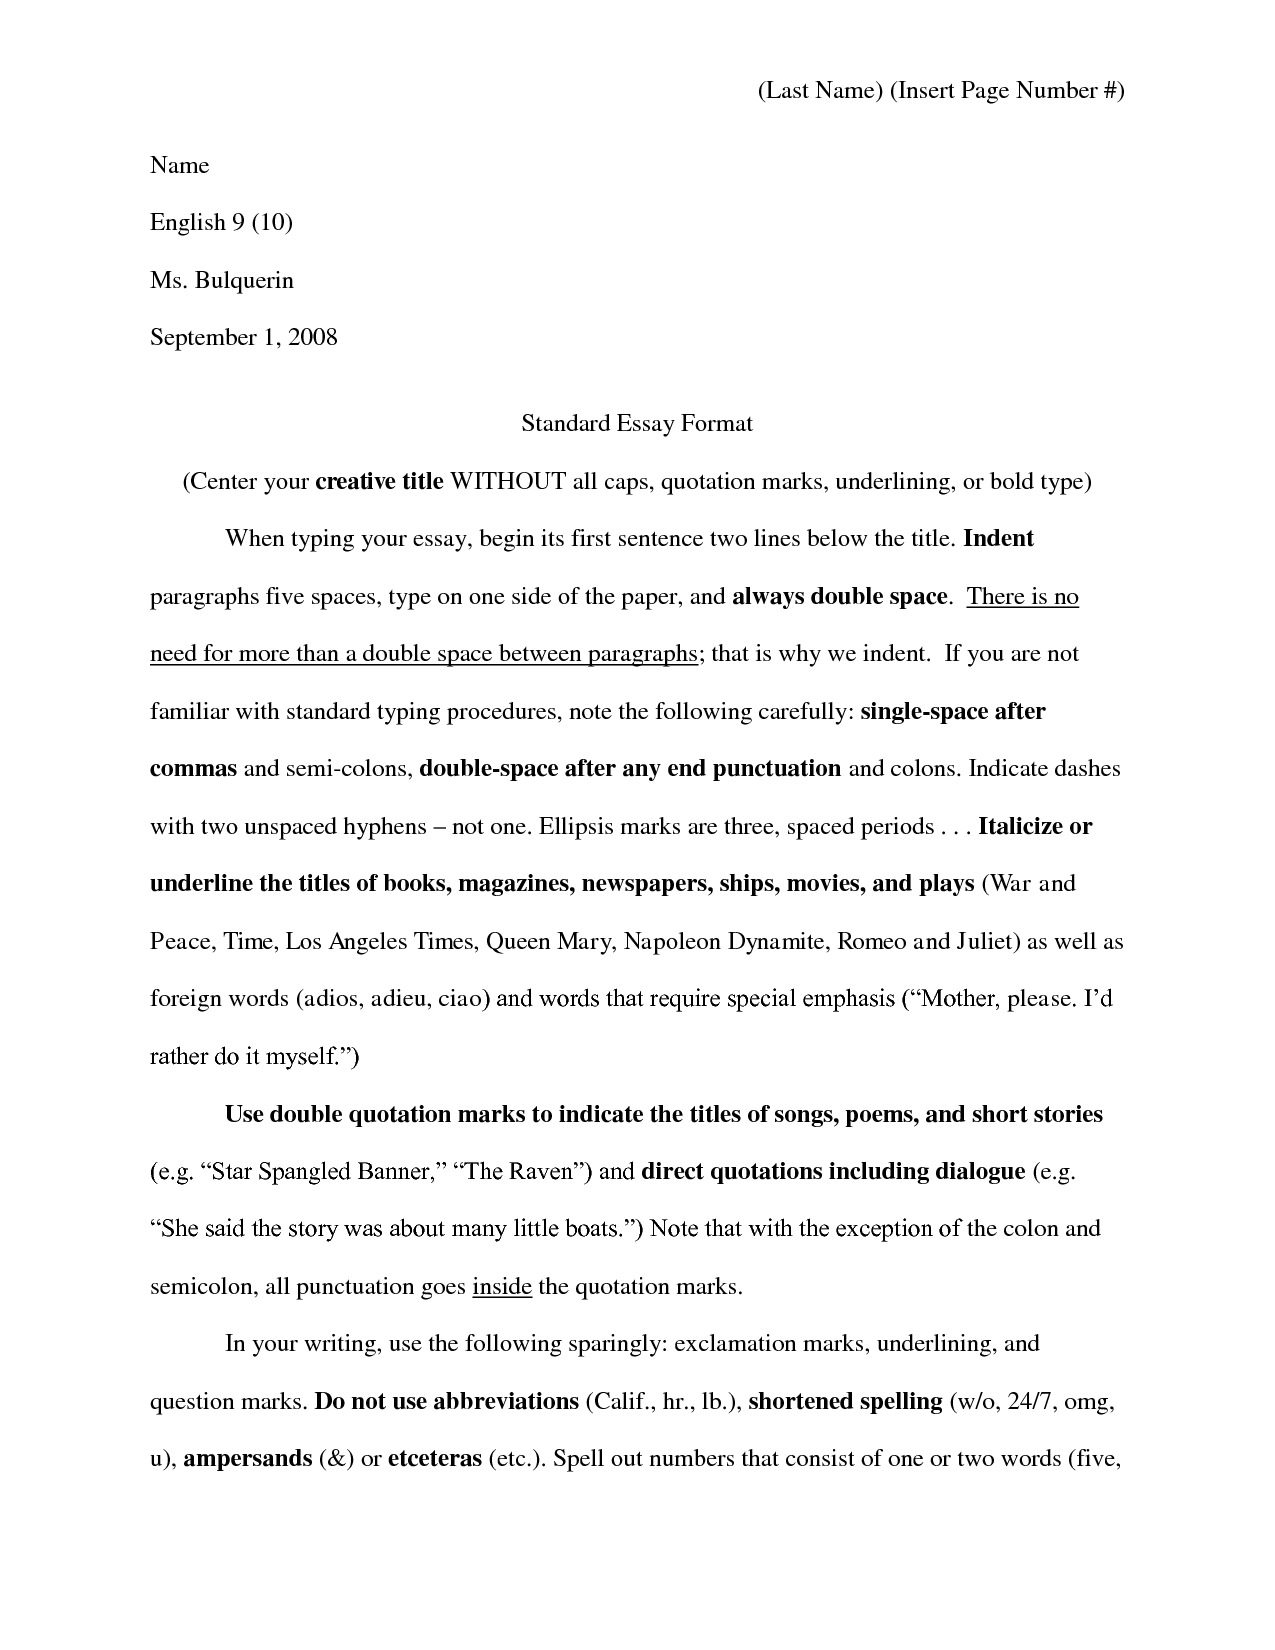 Format Essays  Omfarmcpgroupco Standard Essay Standard Essay Format Standard Essay Format Essays  Essays On Health Care also Persuasive Essay Thesis Examples  Compare And Contrast Essay On High School And College